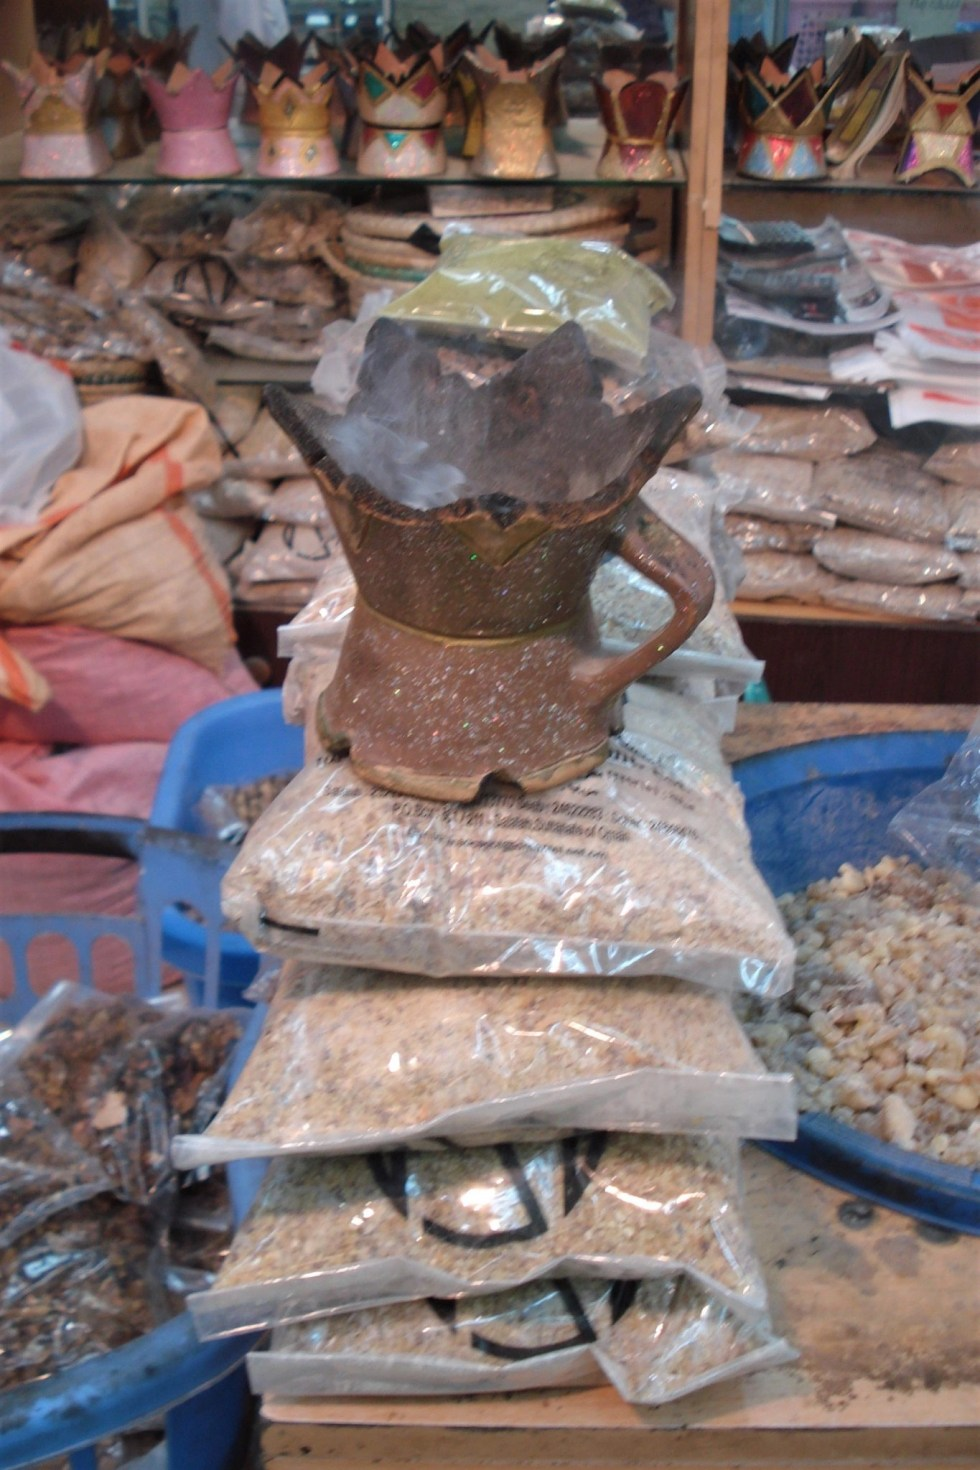 Frankincense burning in a burner atop several plastic bags of frankincense